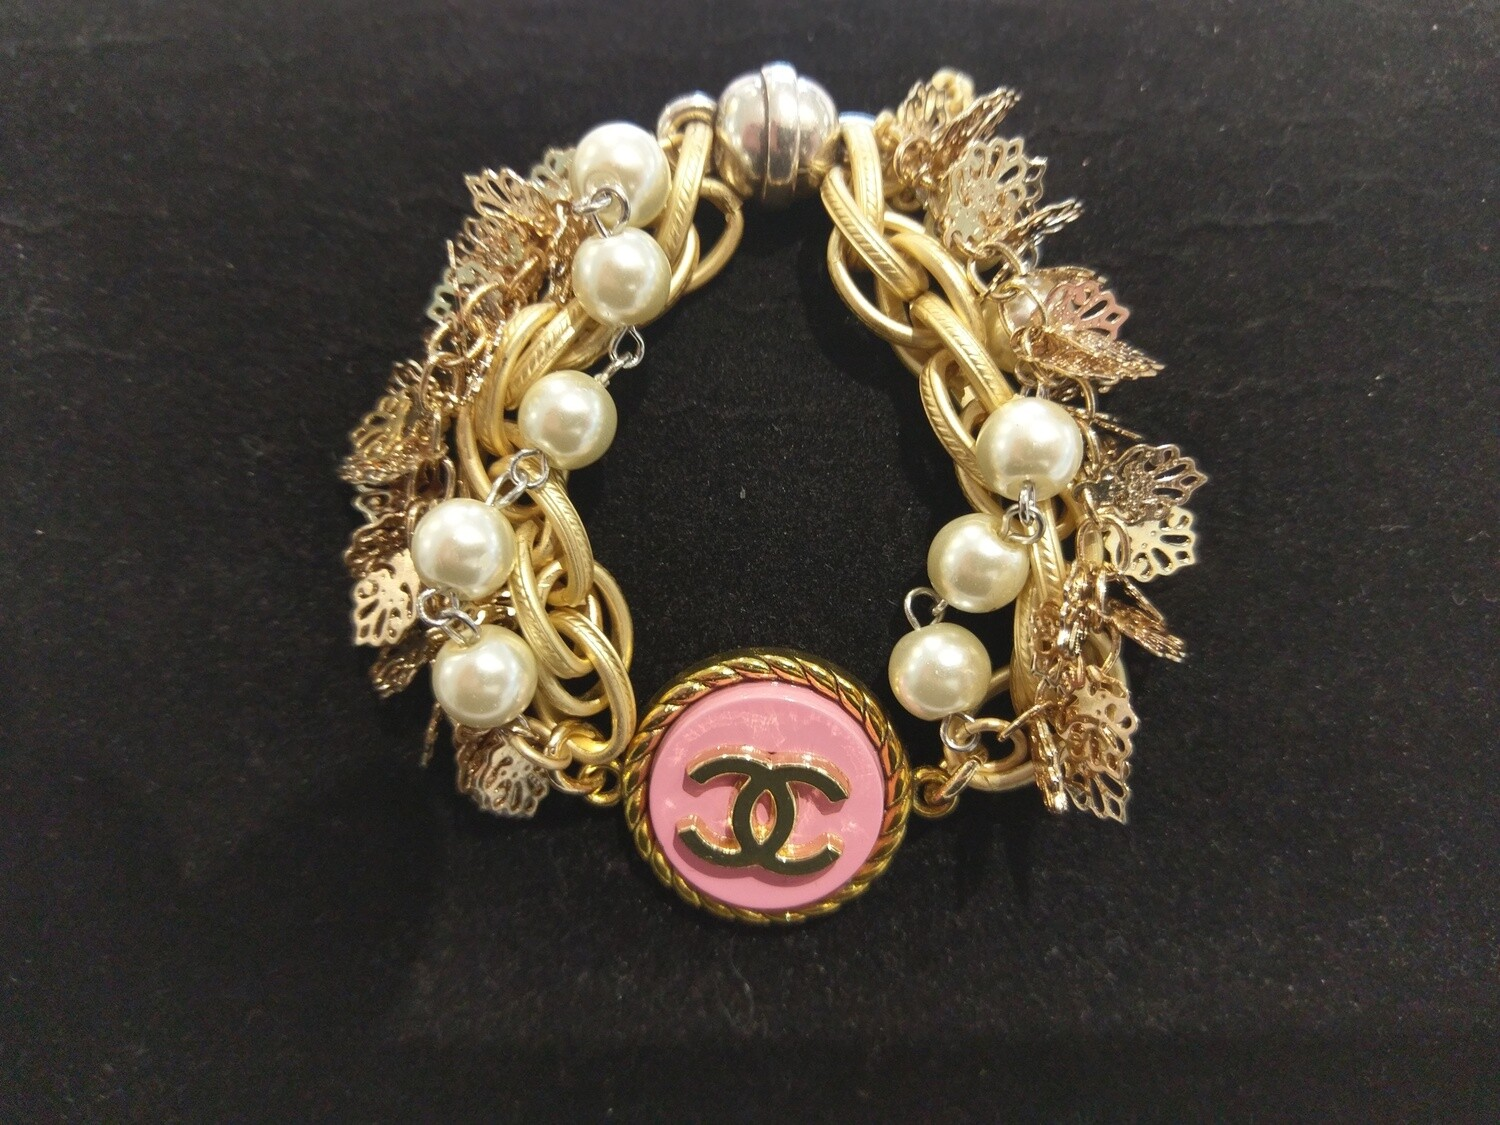 Vintage Chanel  Button Bracelet With Multi-Strands And Pink Button